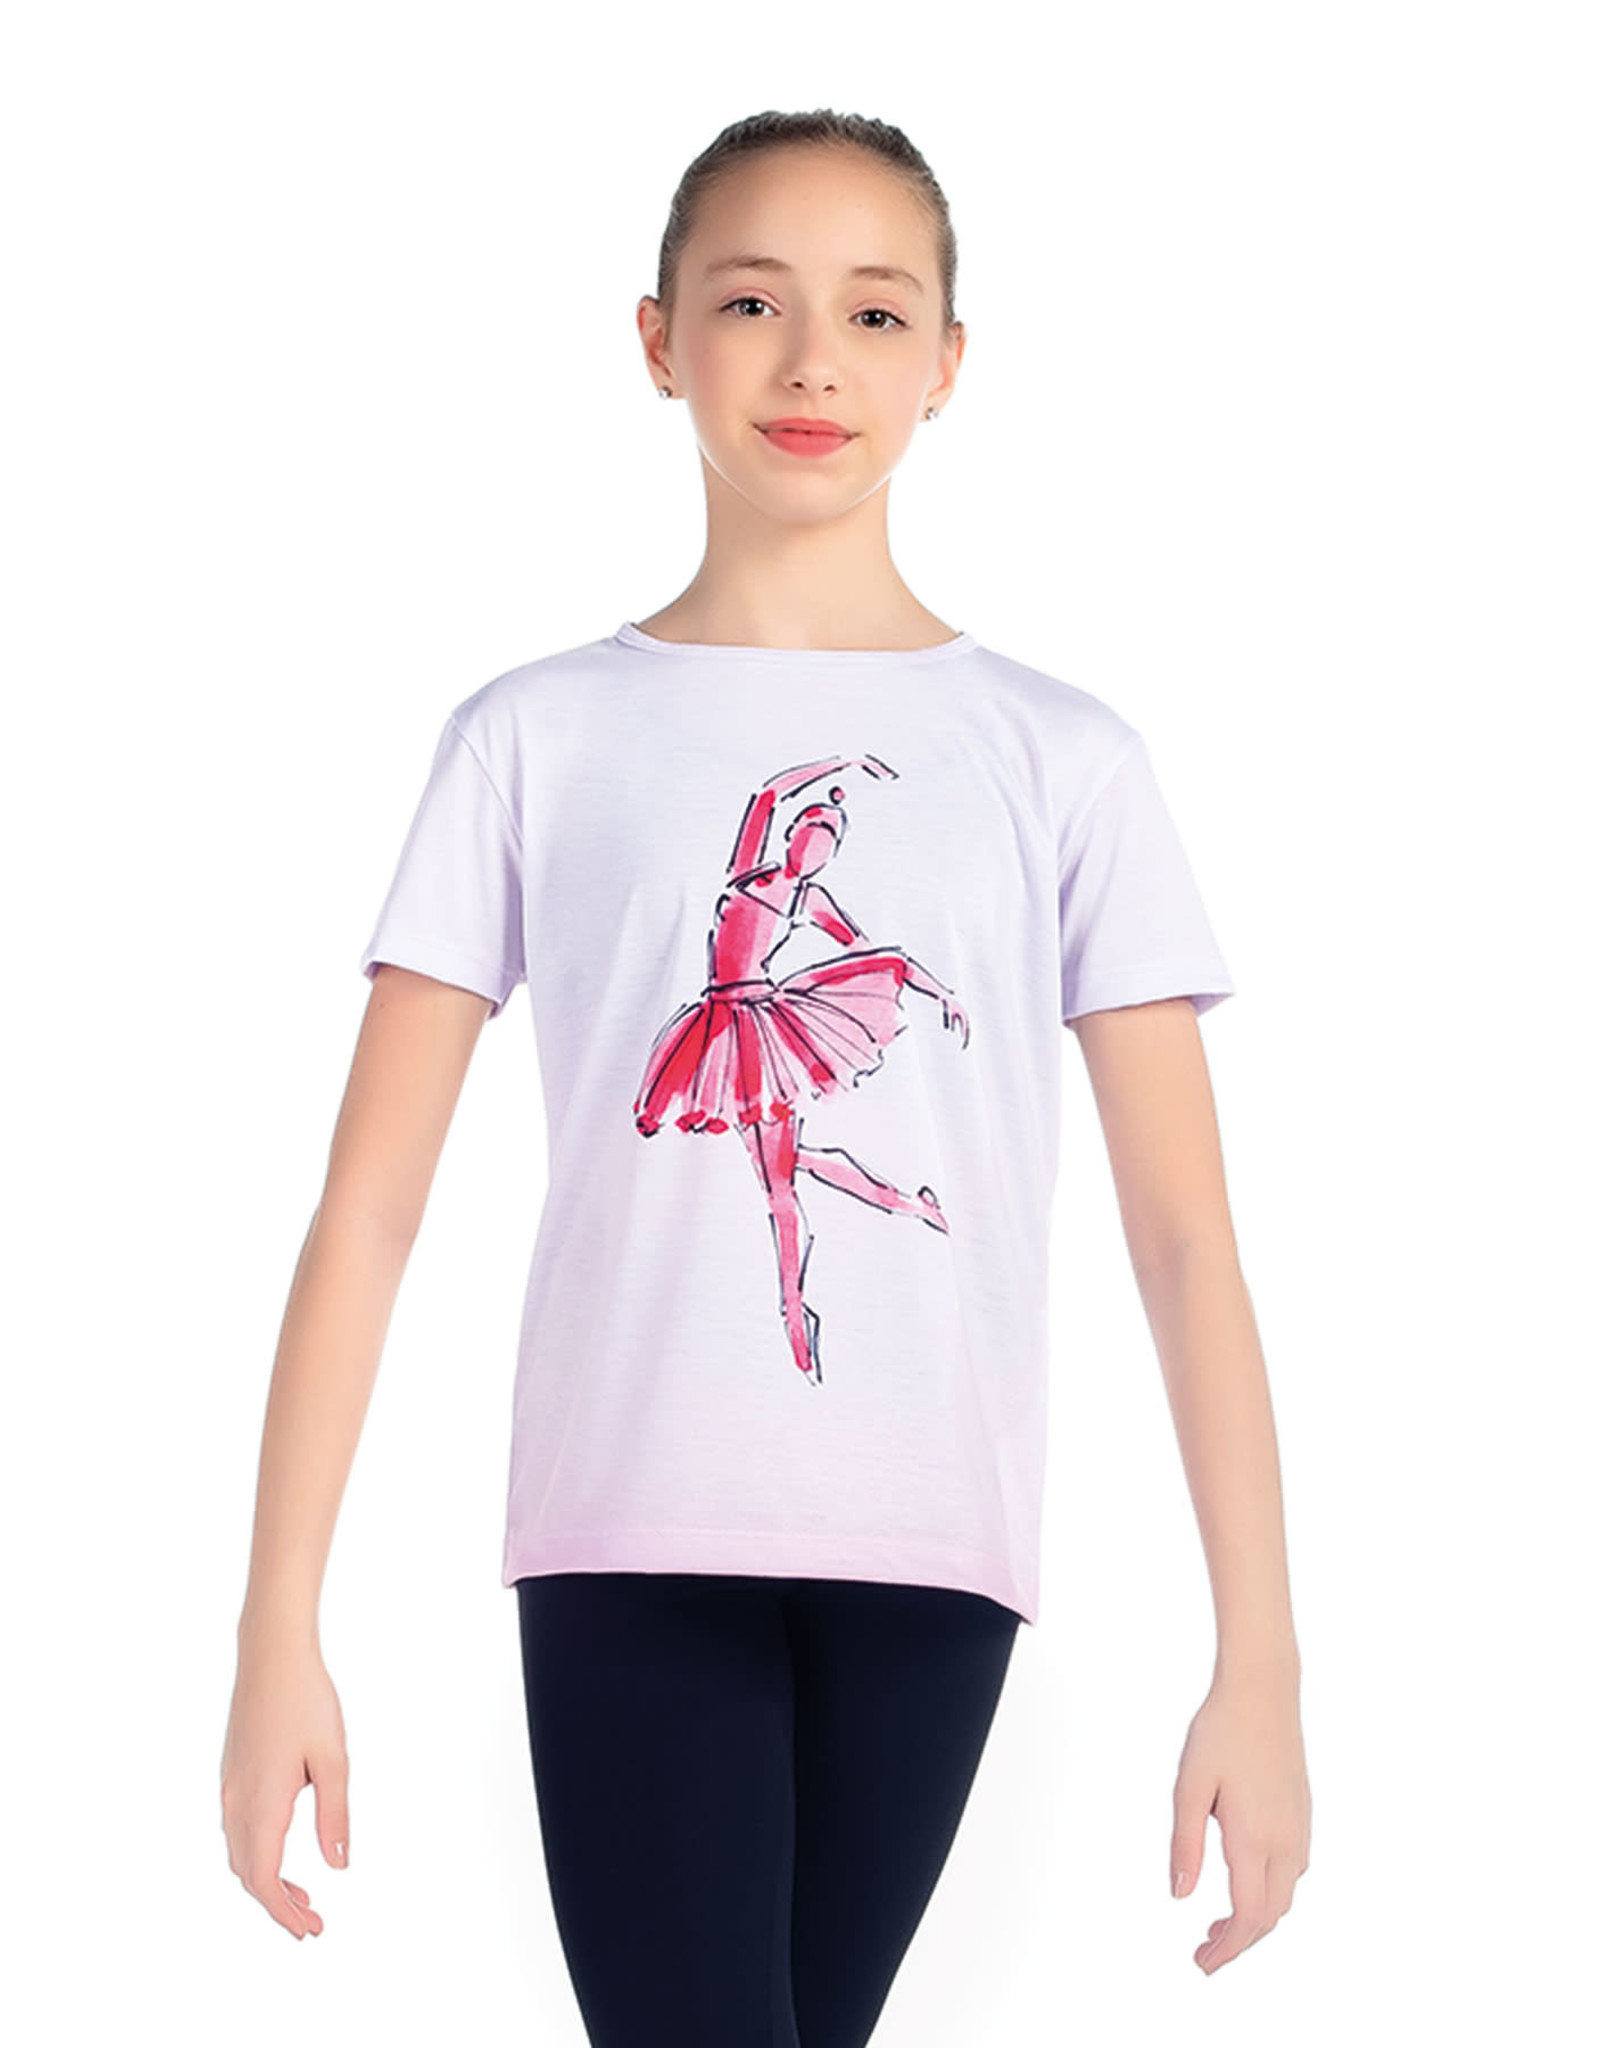 SoDanca SoDanca Kids Ballet Dancer Arebesque shirt